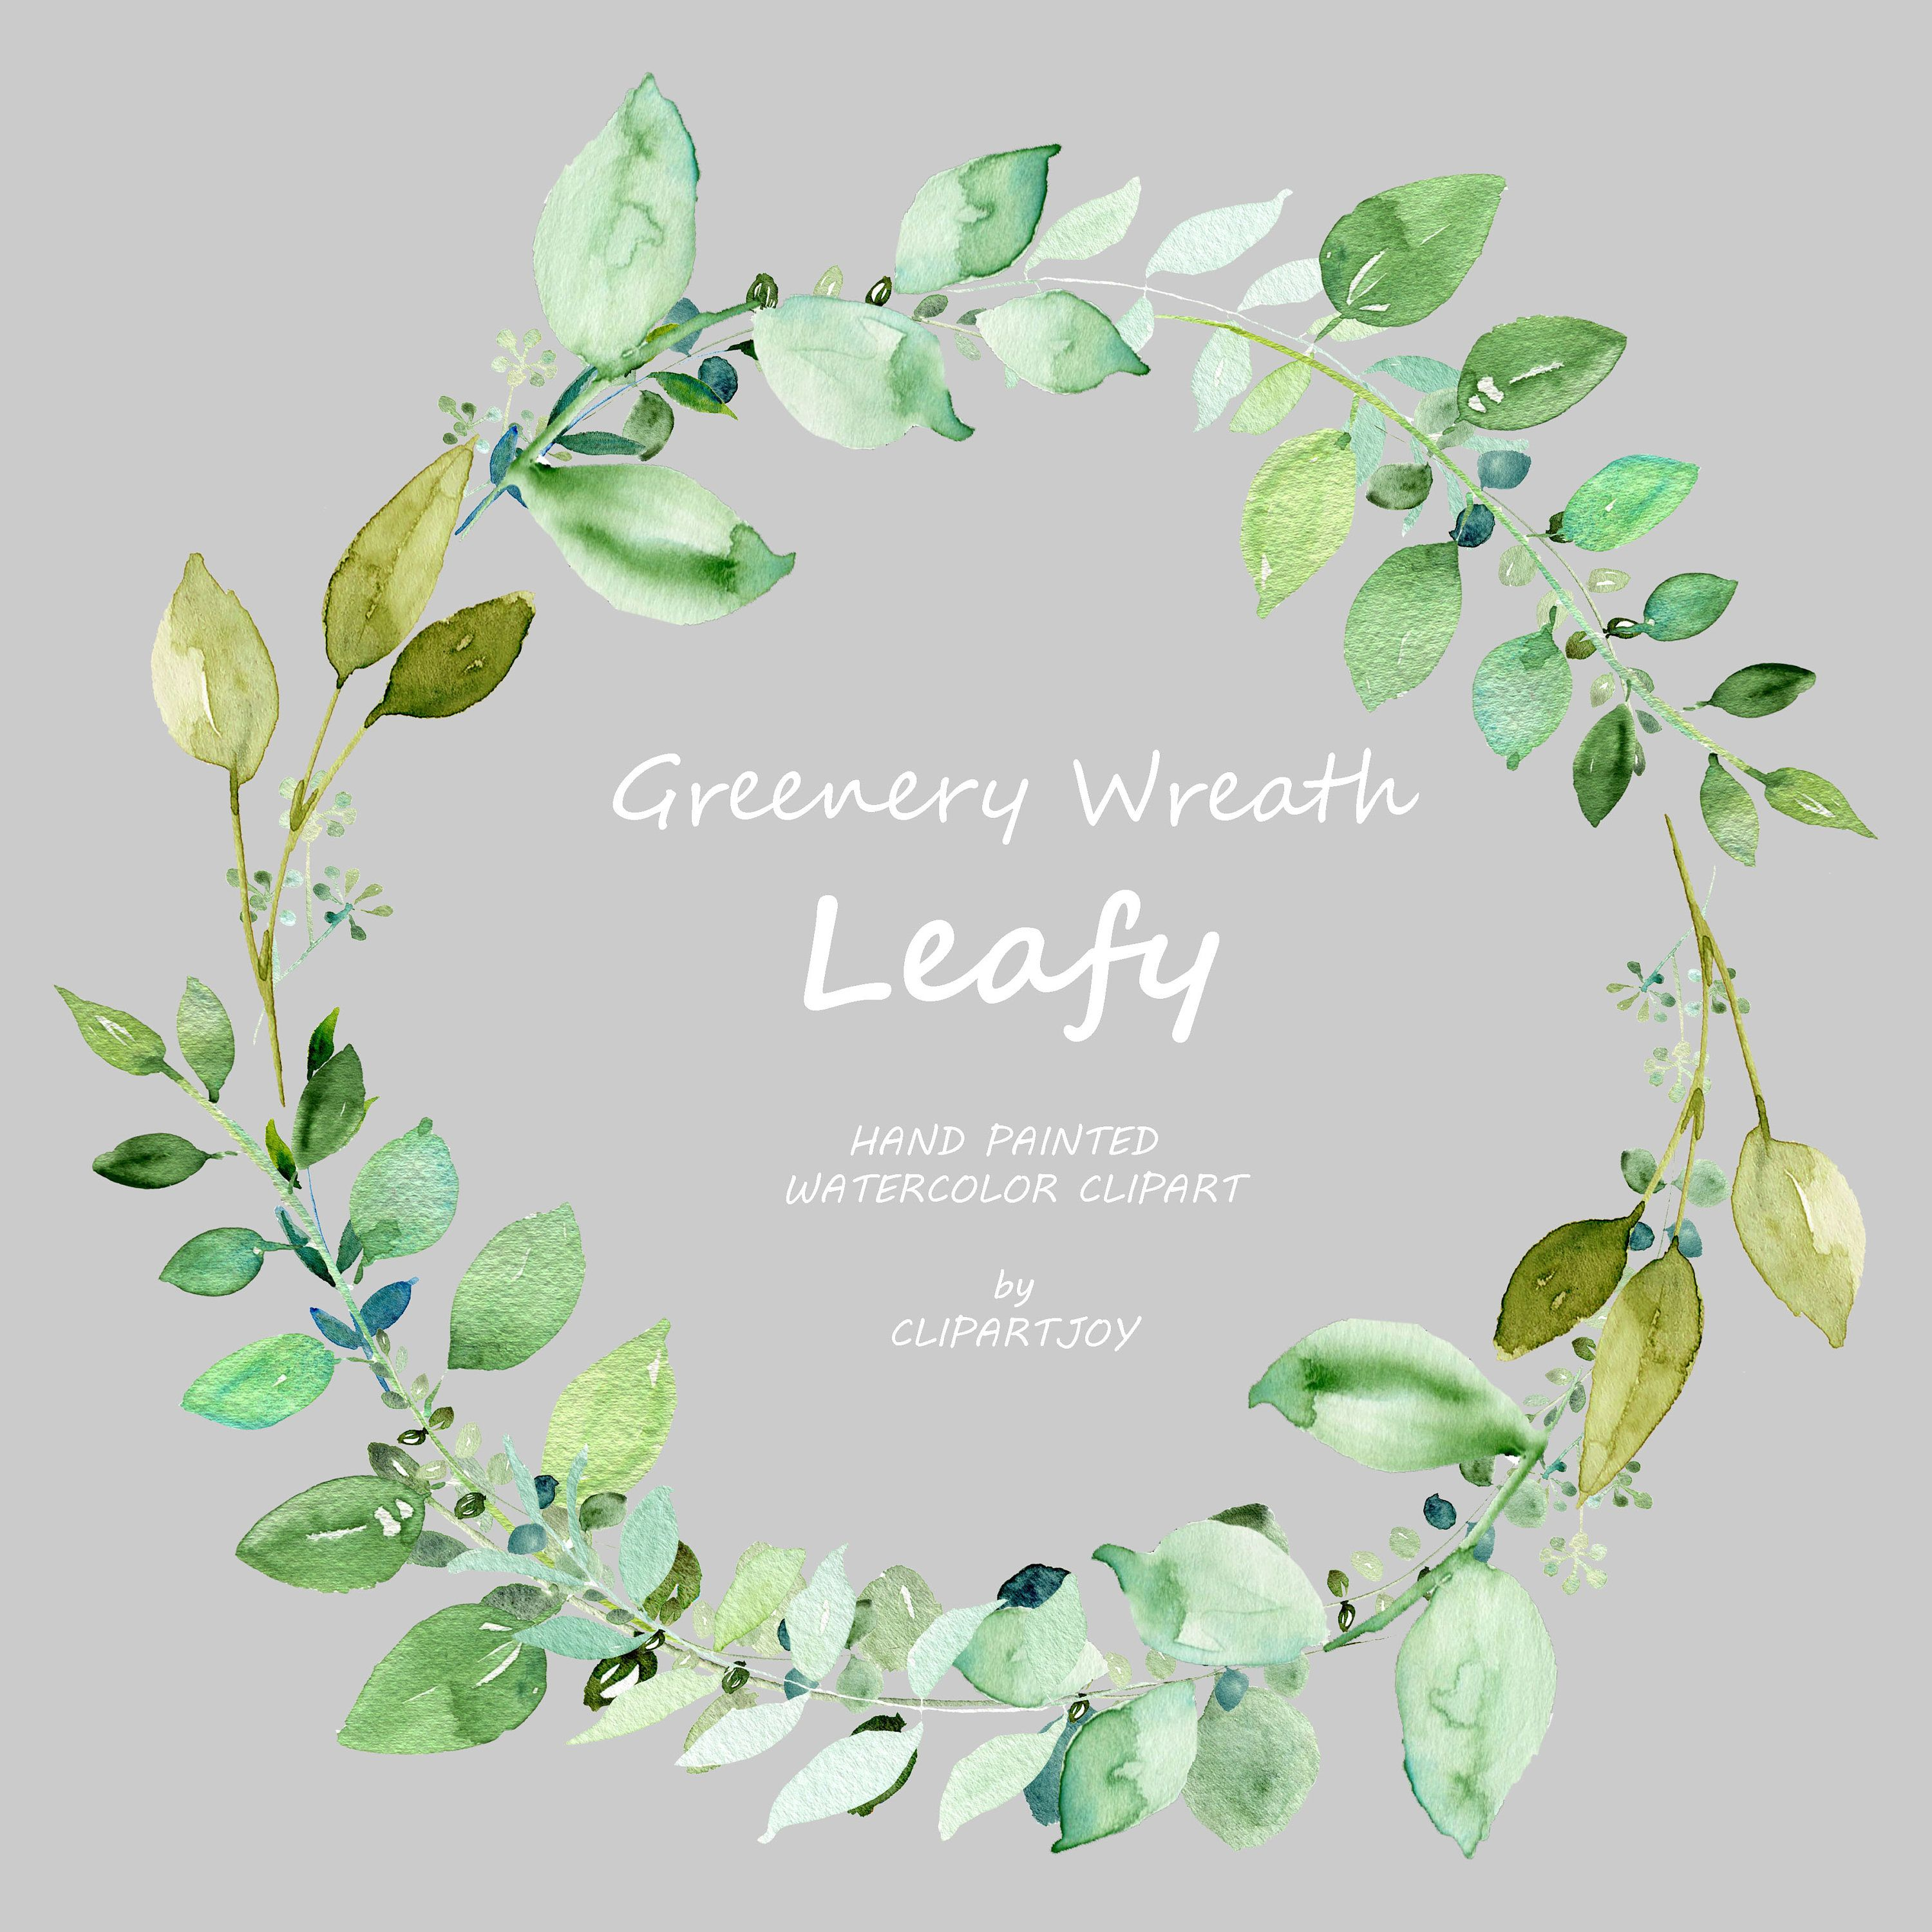 Watercolor Greenery Wreath Clipart: Handpainted Graphic | PNG | Digital Download | Commercial Use – Hand Painted Clipart (clip art)